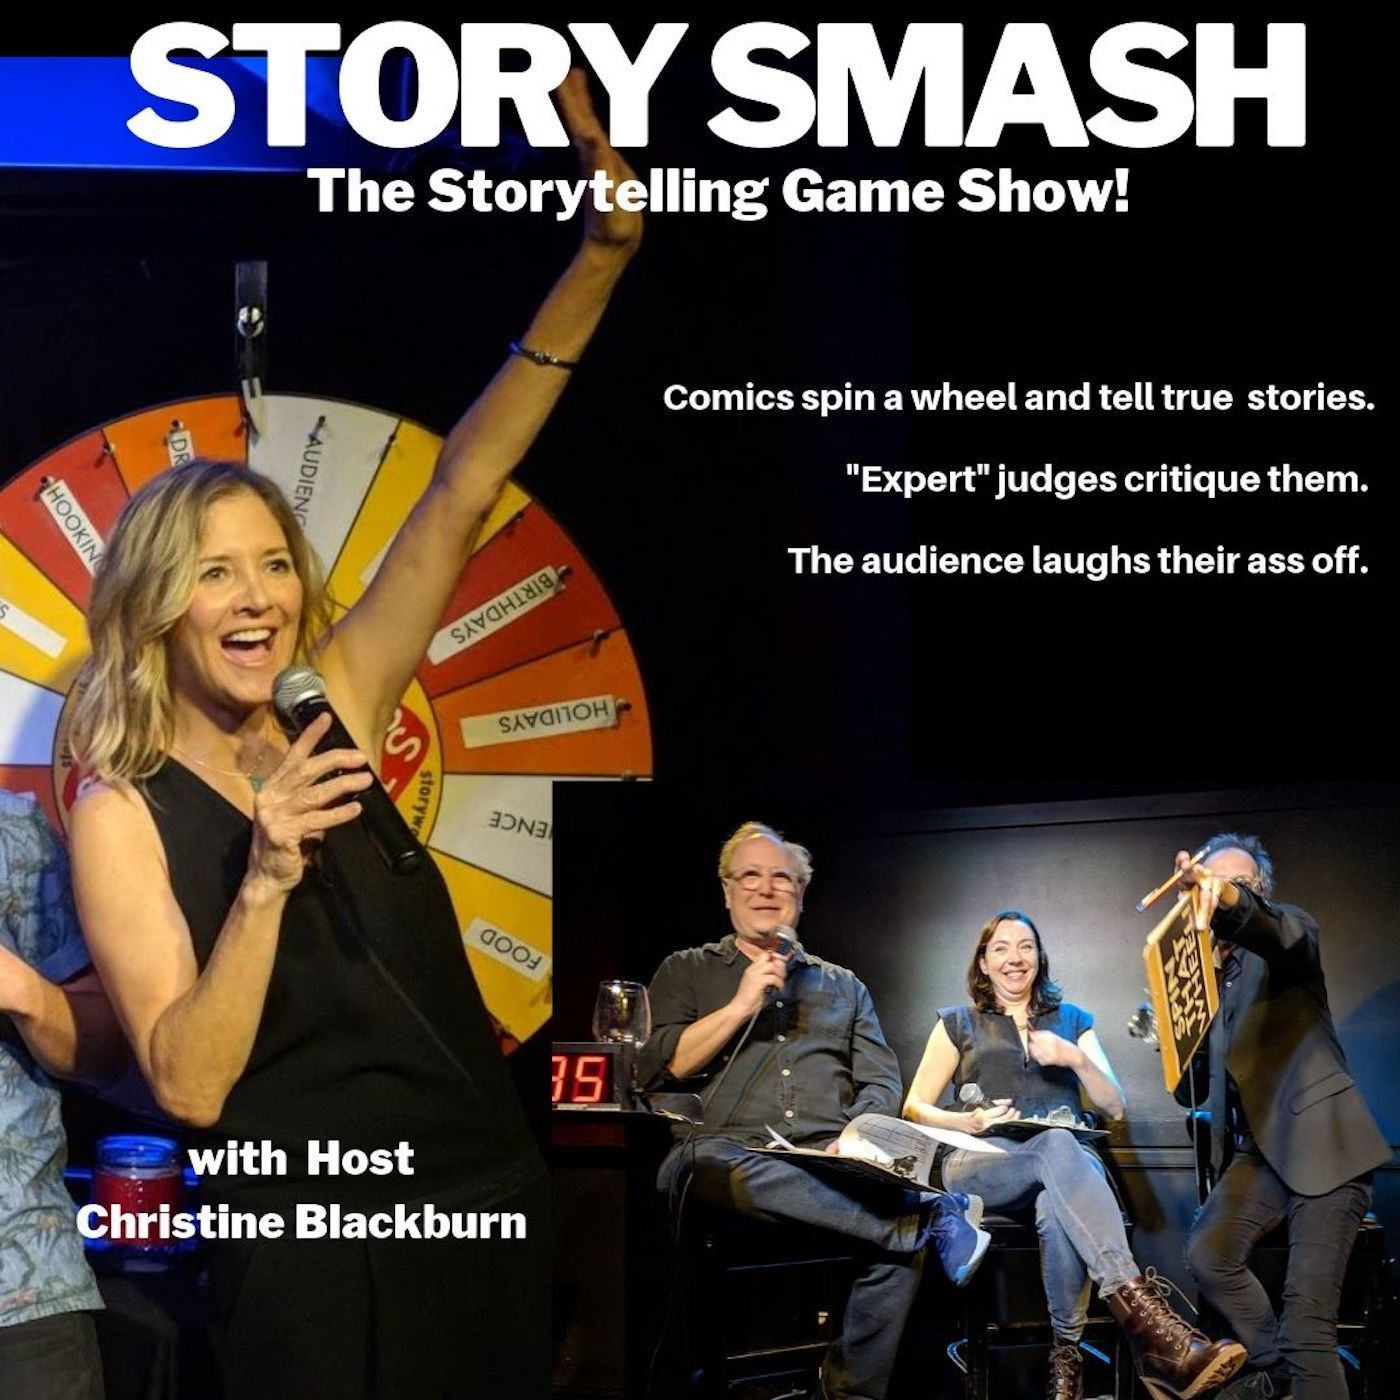 583 - Story Smash the Storytelling Gameshow LIVE at The Hollywood Improv!